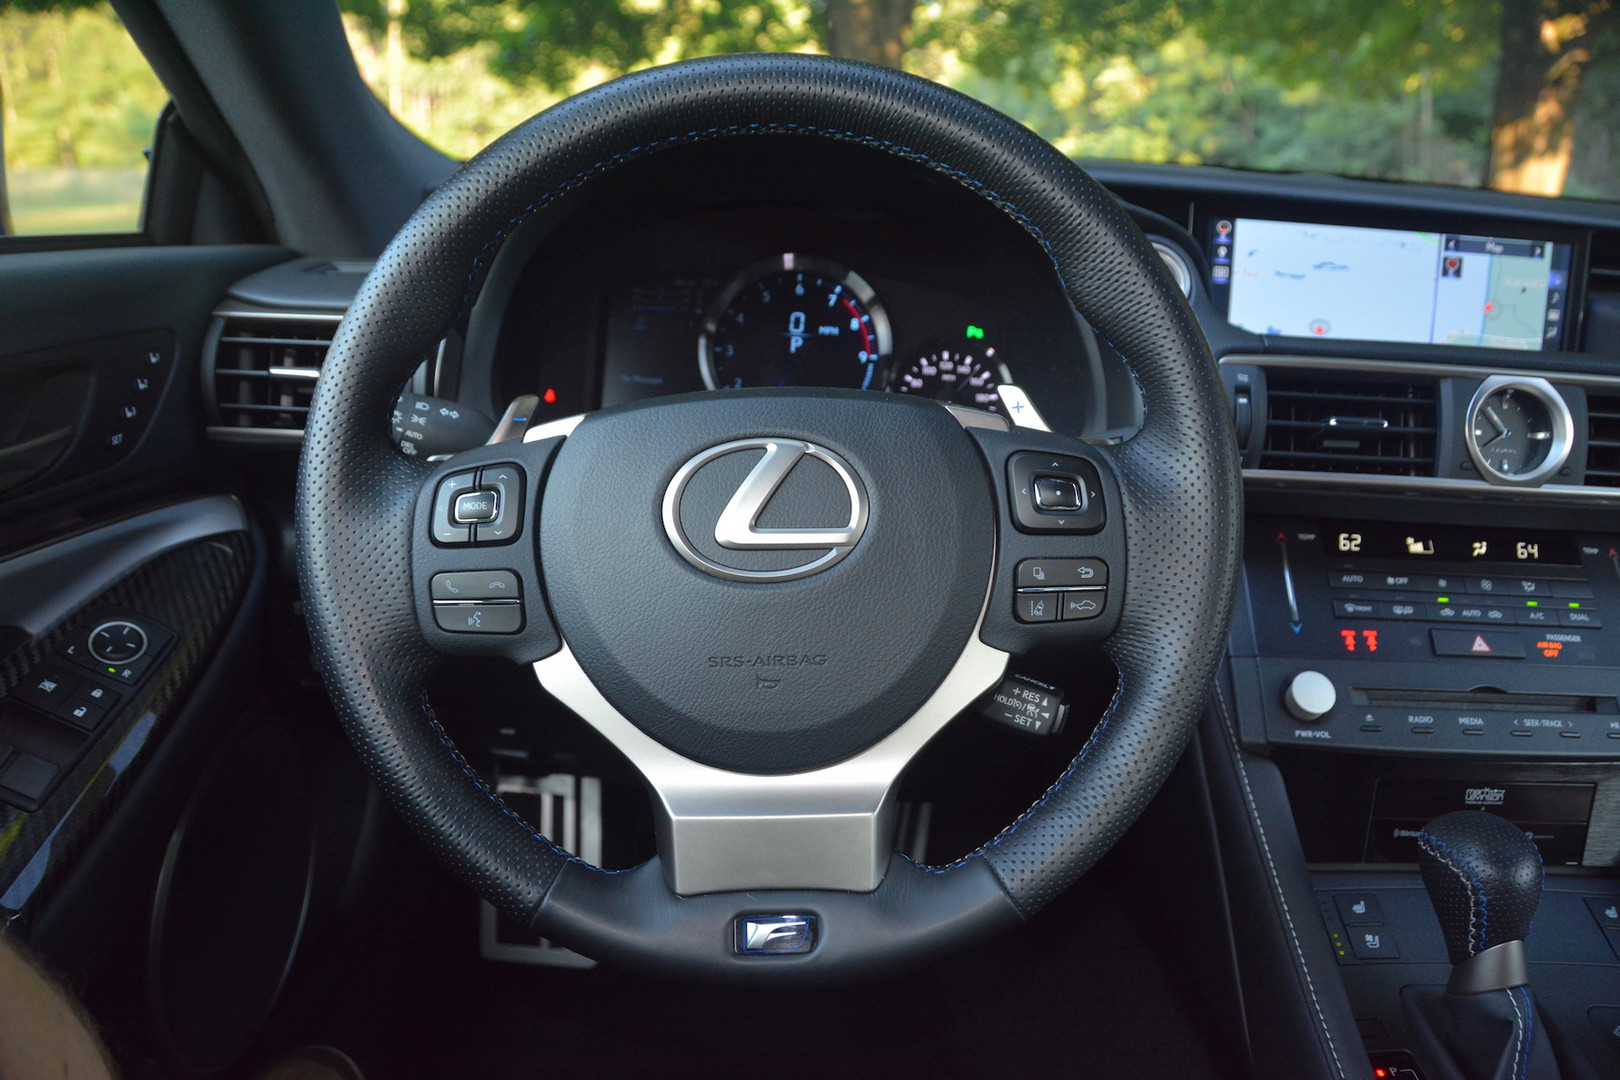 2019 Lexus RC F Steering Wheel